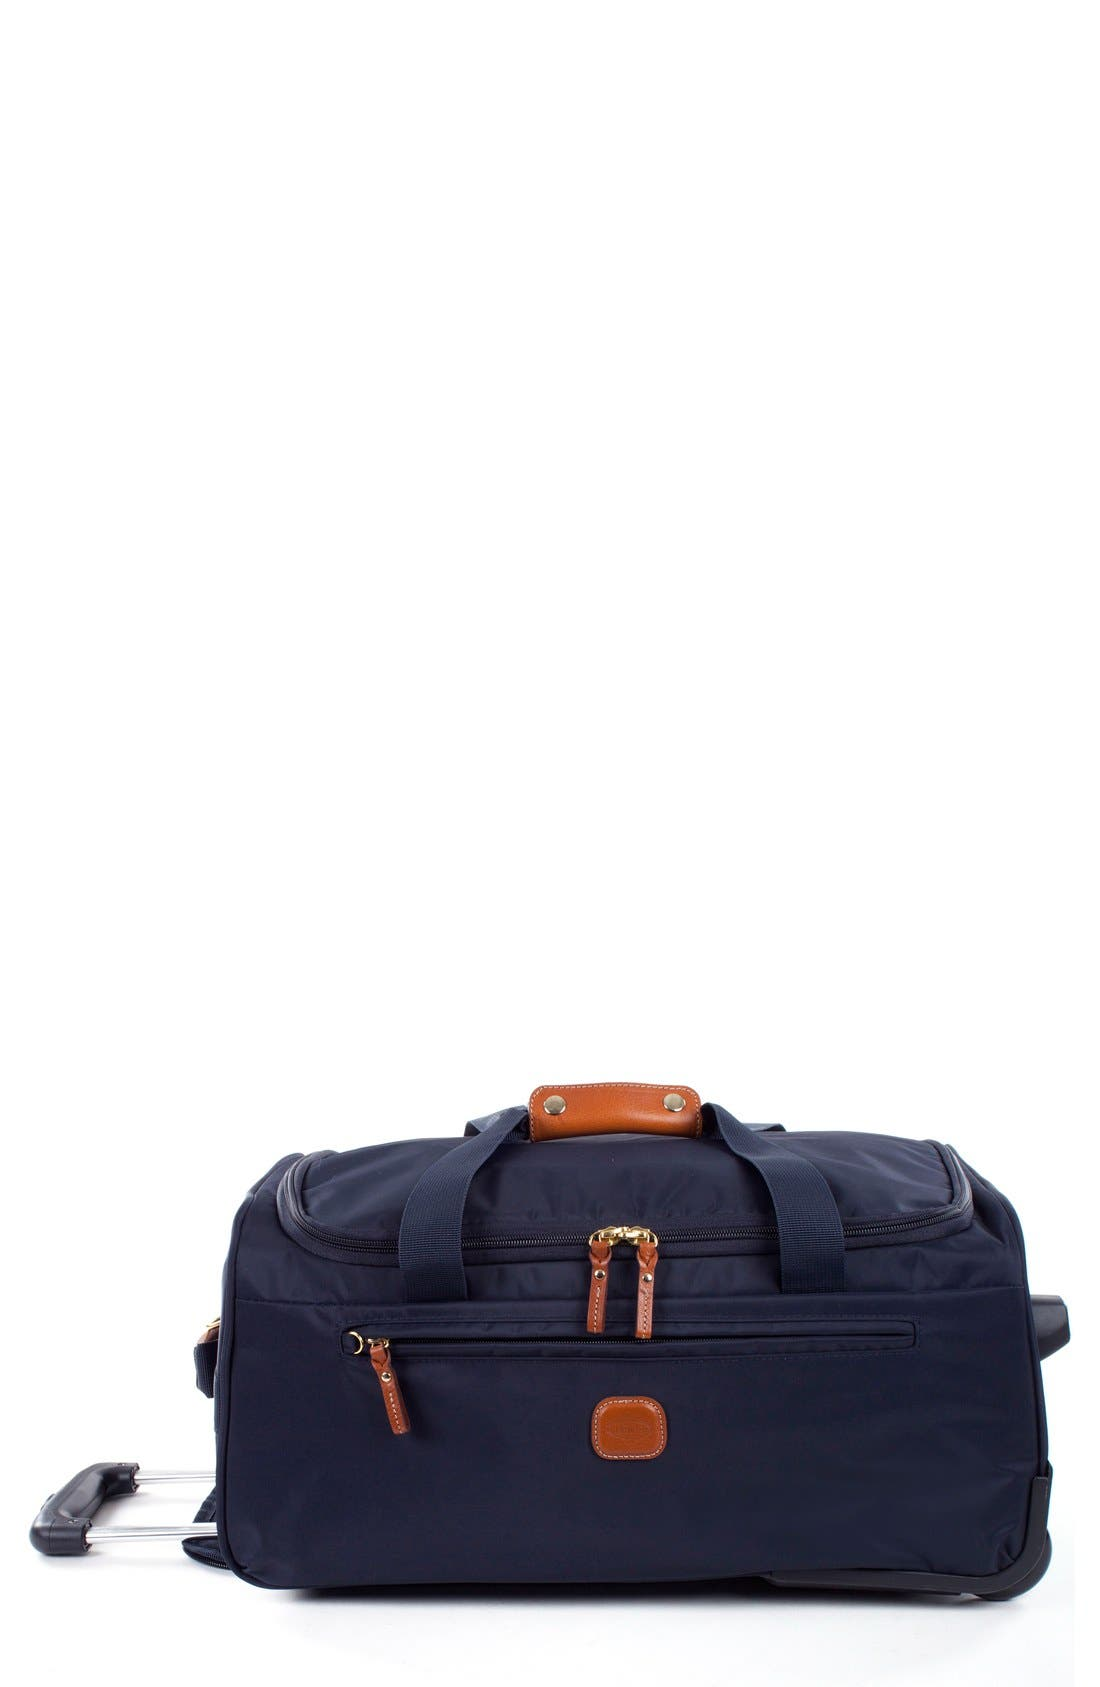 X-Bag 21-Inch Rolling Carry-On Duffel Bag,                             Main thumbnail 1, color,                             NAVY